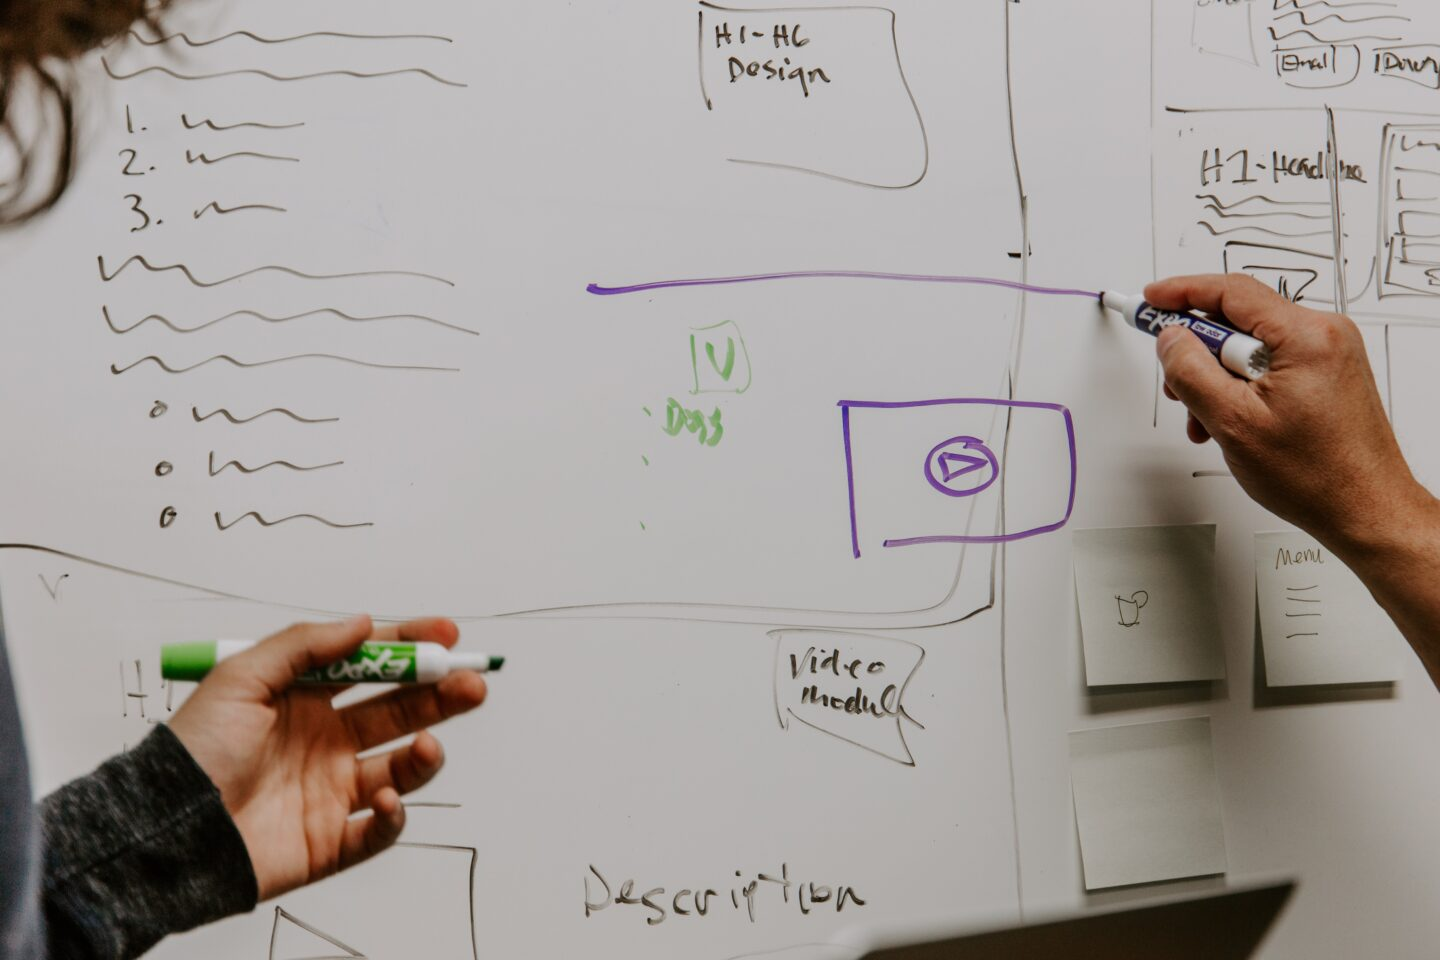 Two people discuss a website design concept and draw it on a white board.